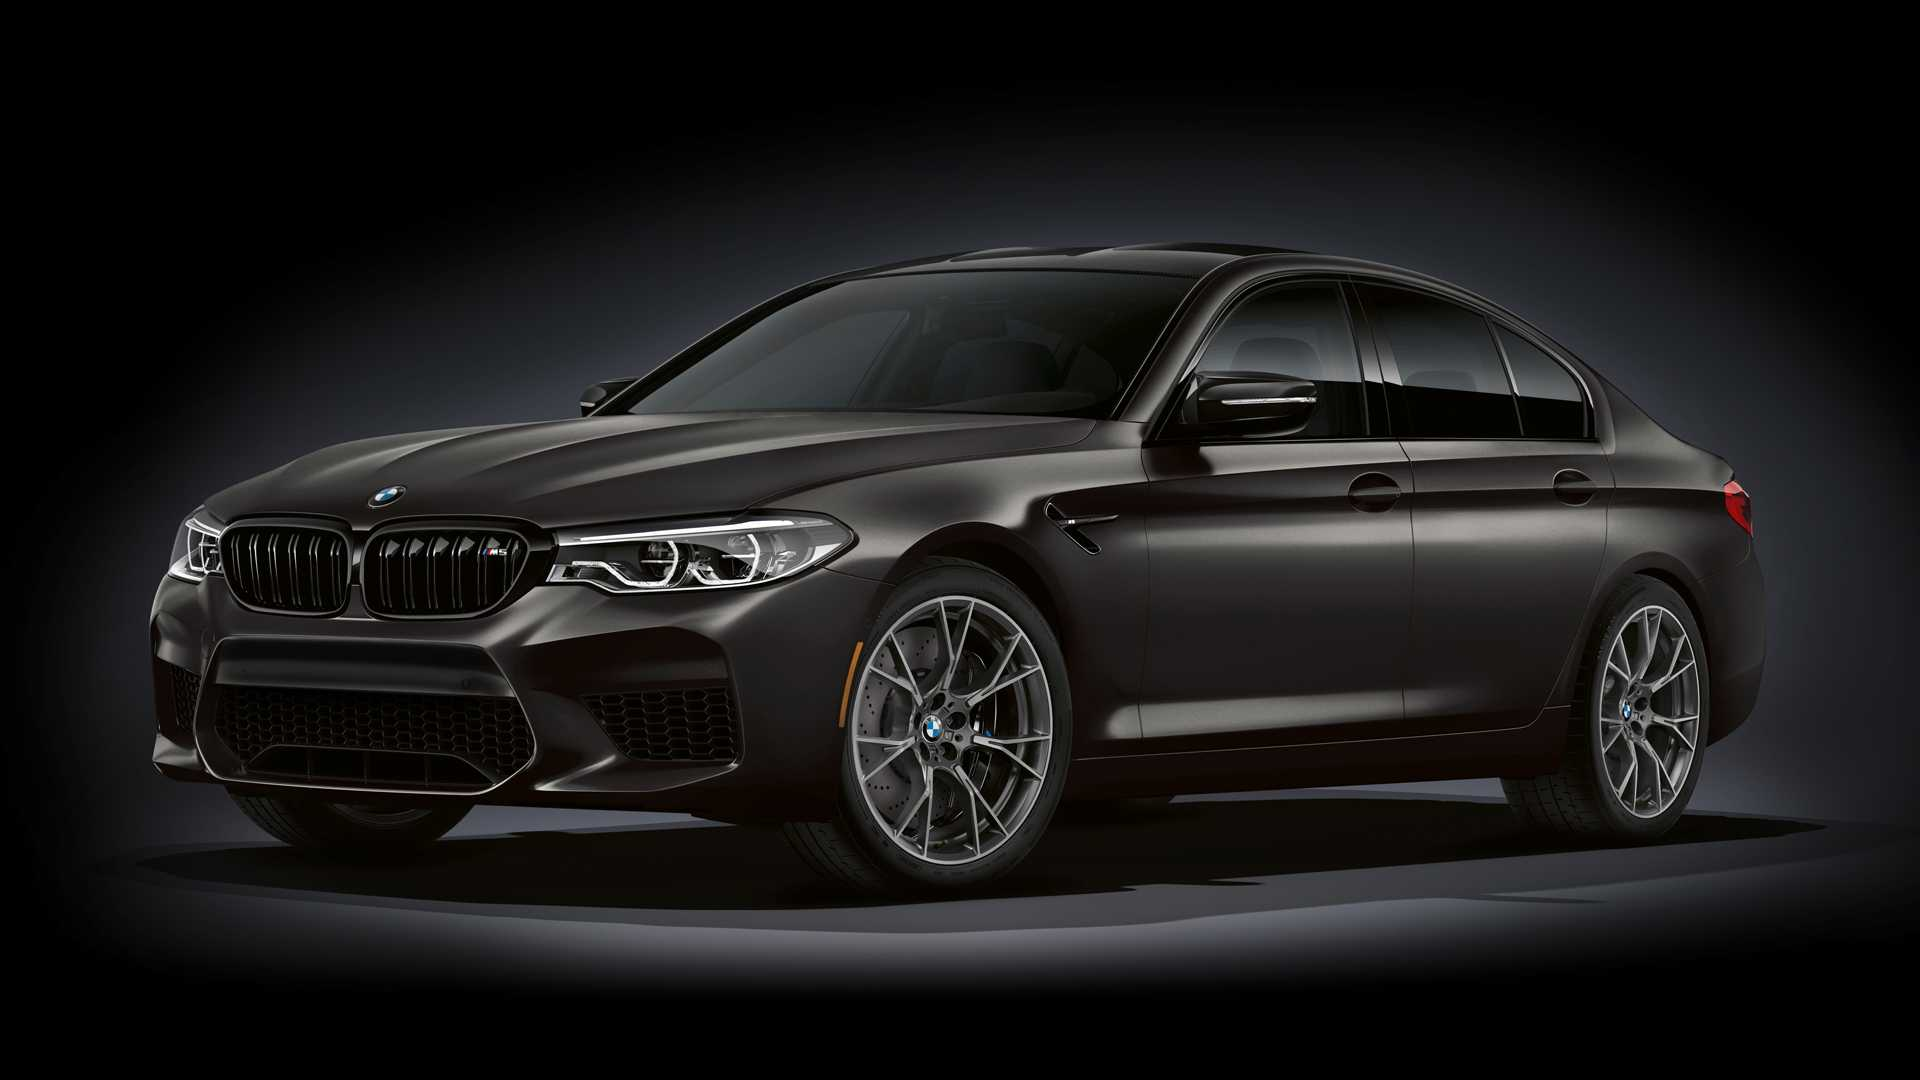 44 New 2020 Bmw M5 Edition 35 Years Price And Release Date